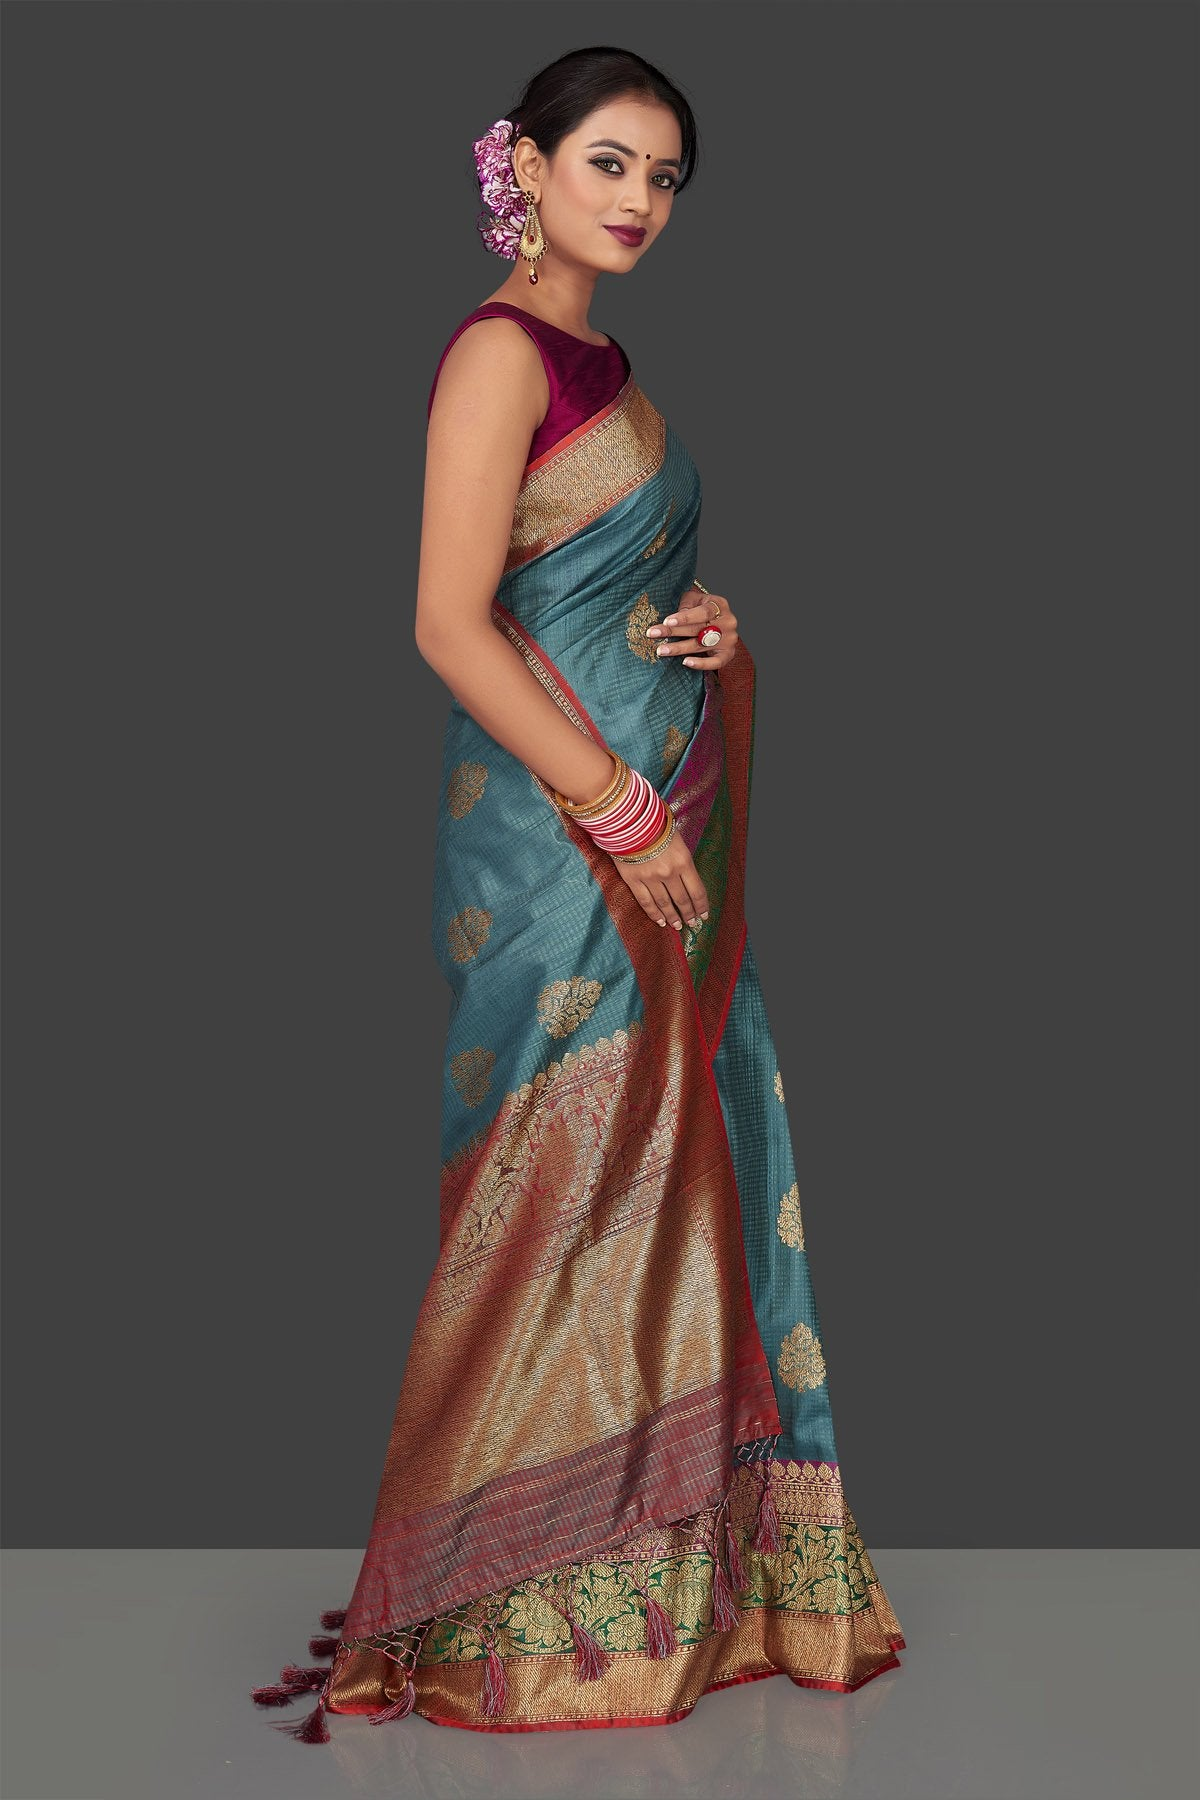 Buy gorgeous steel blue tassar Banarasi saree online in USA with antique zari border and zari buta. Garner compliments on weddings and special occasions with exquisite Banarasi sarees, handwoven silk sarees, tussar sarees from Pure Elegance Indian fashion store in USA.-right